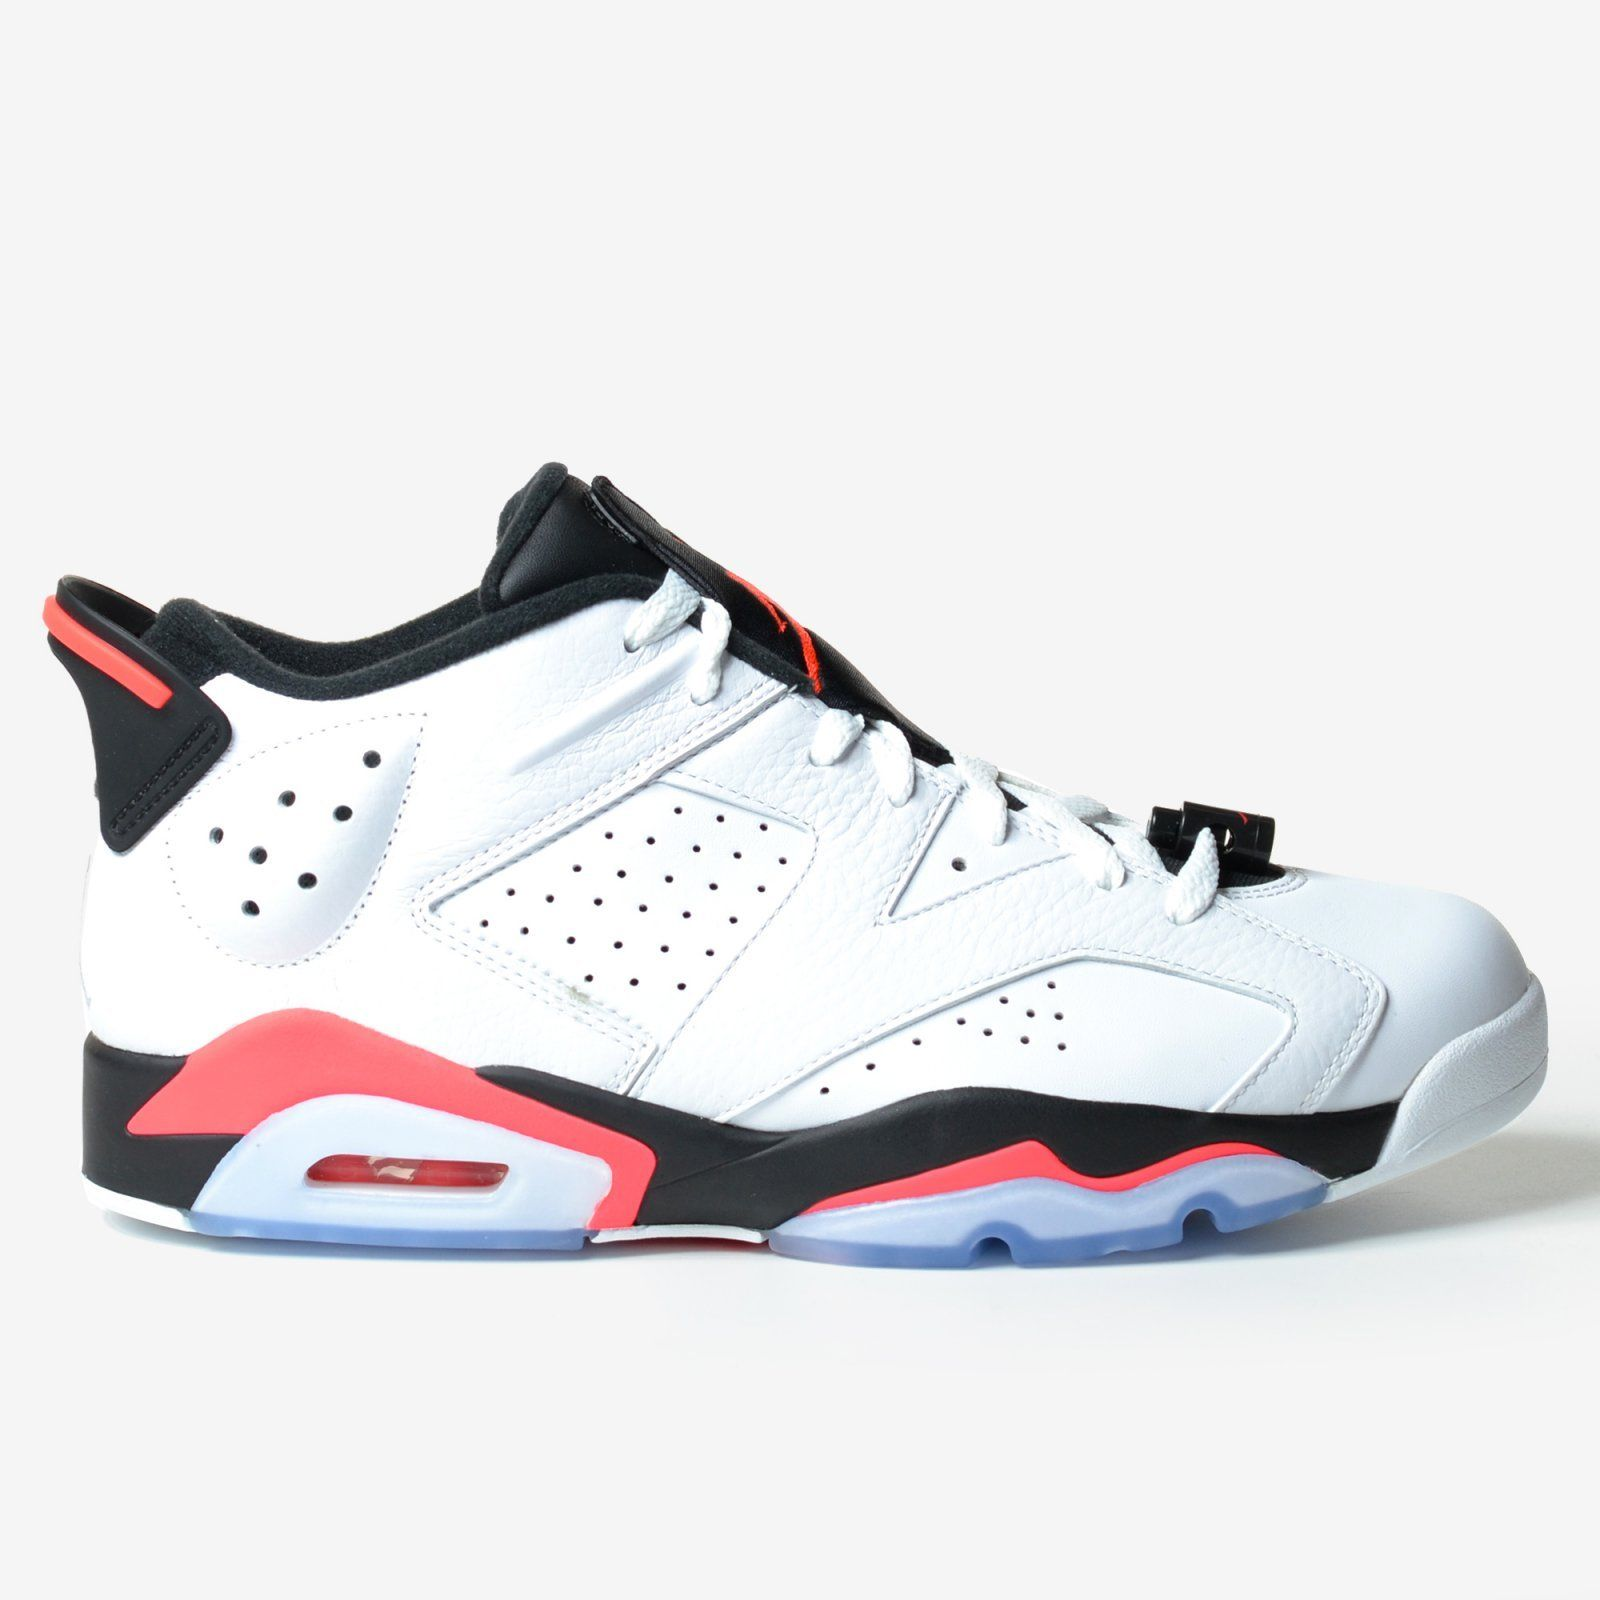 premium selection 0dcb8 8c5d9 The 10 Best Jordan Buys on eBay Right Now! - HOUSE OF HEAT ...